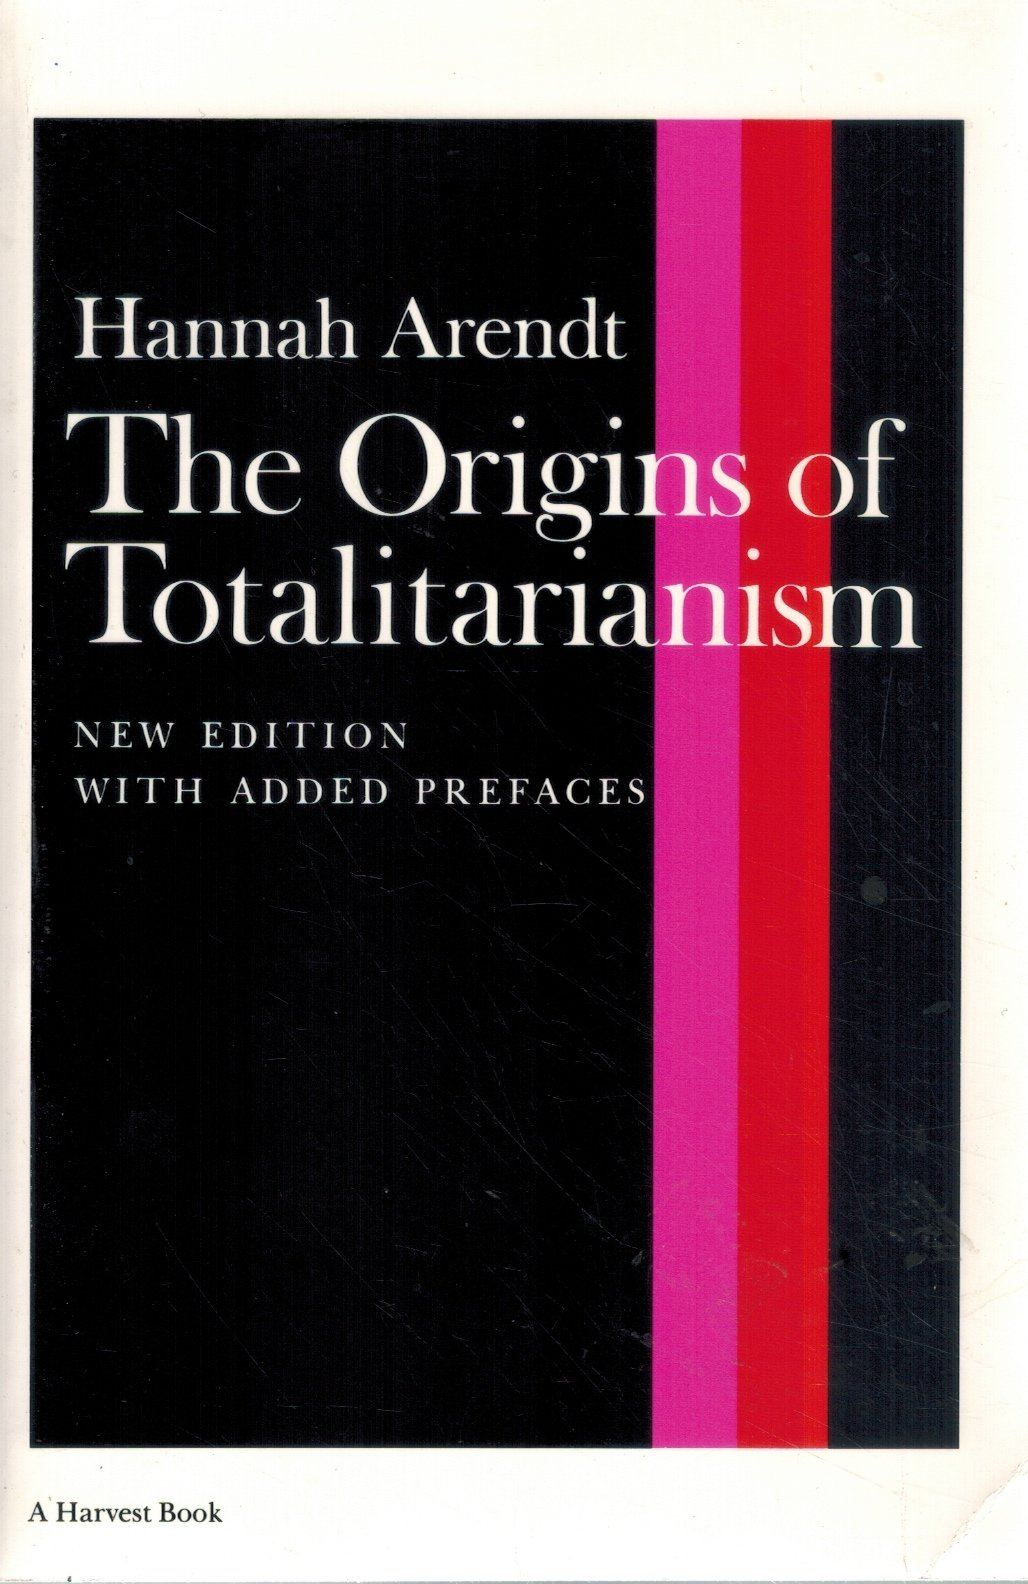 THE ORIGINS OF TOTALITARIANISM  by Arendt, Hannah